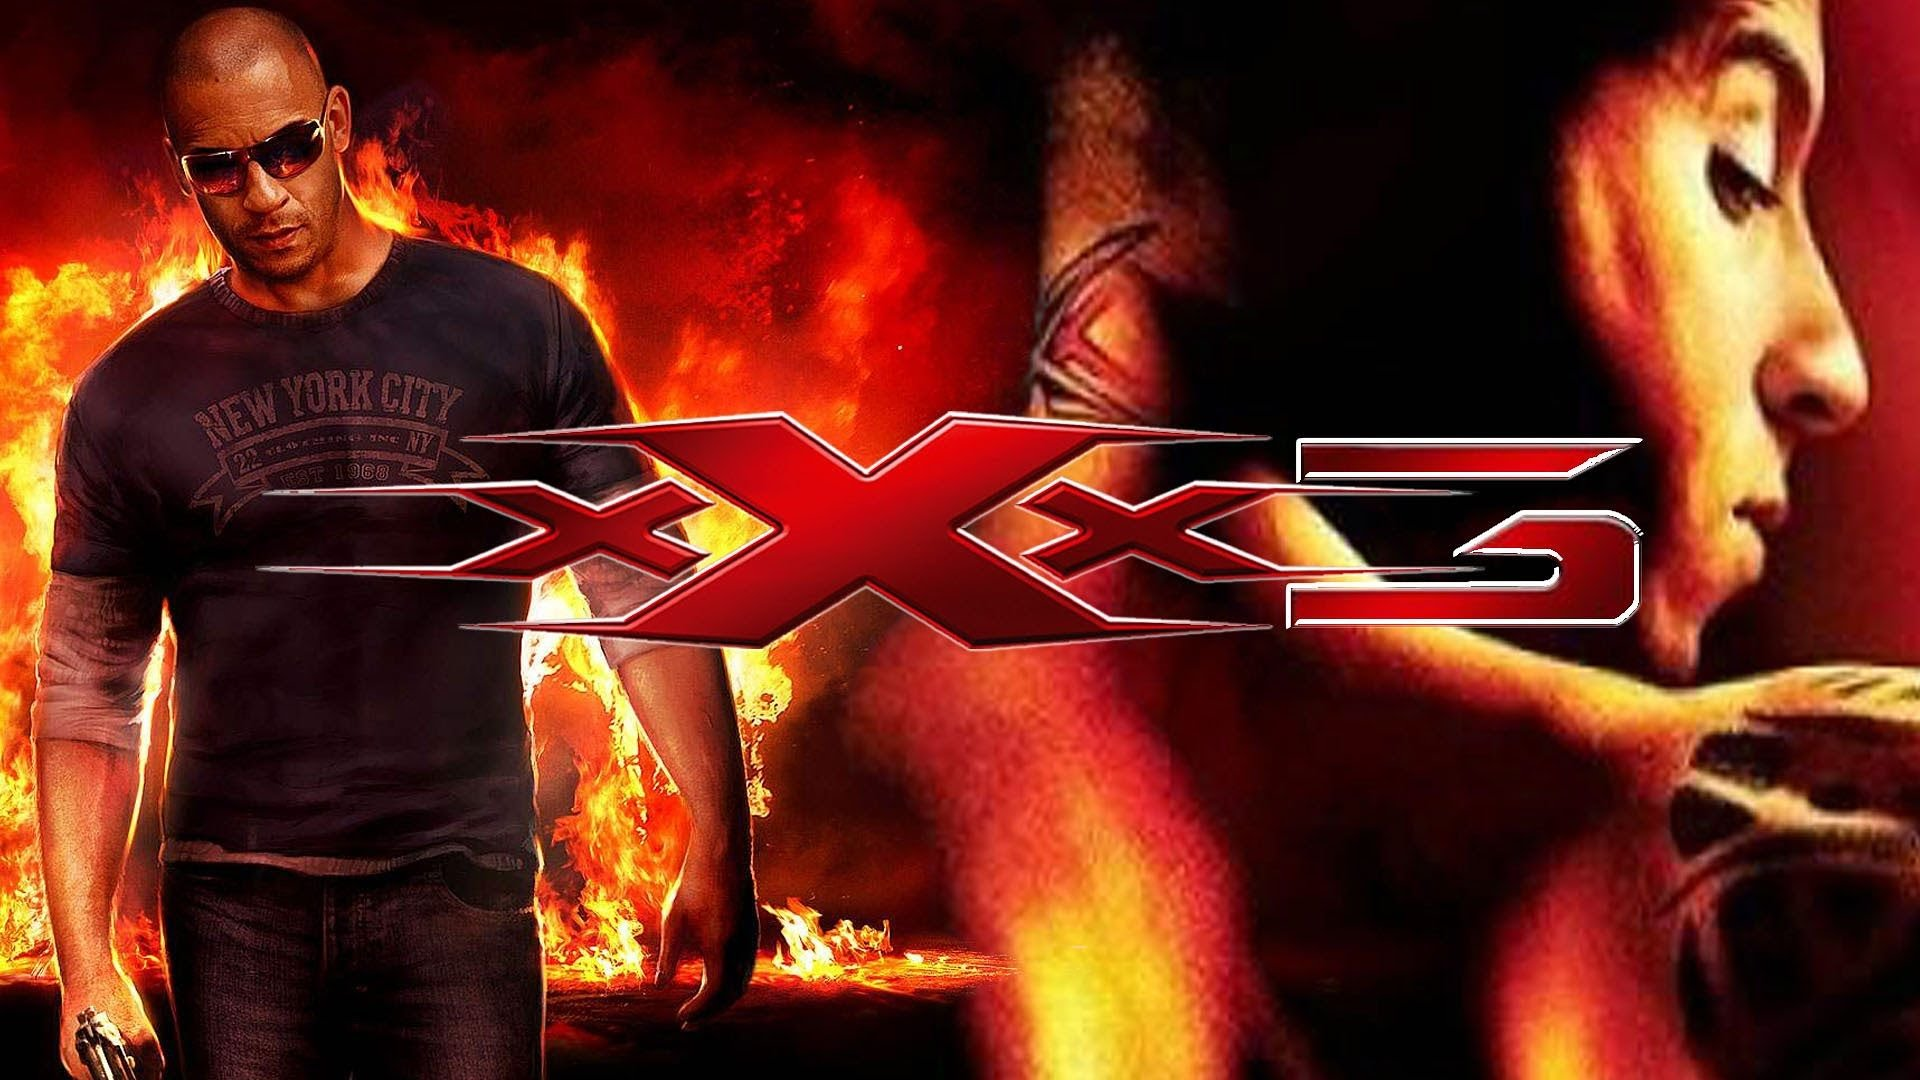 xxx hd wallpaper